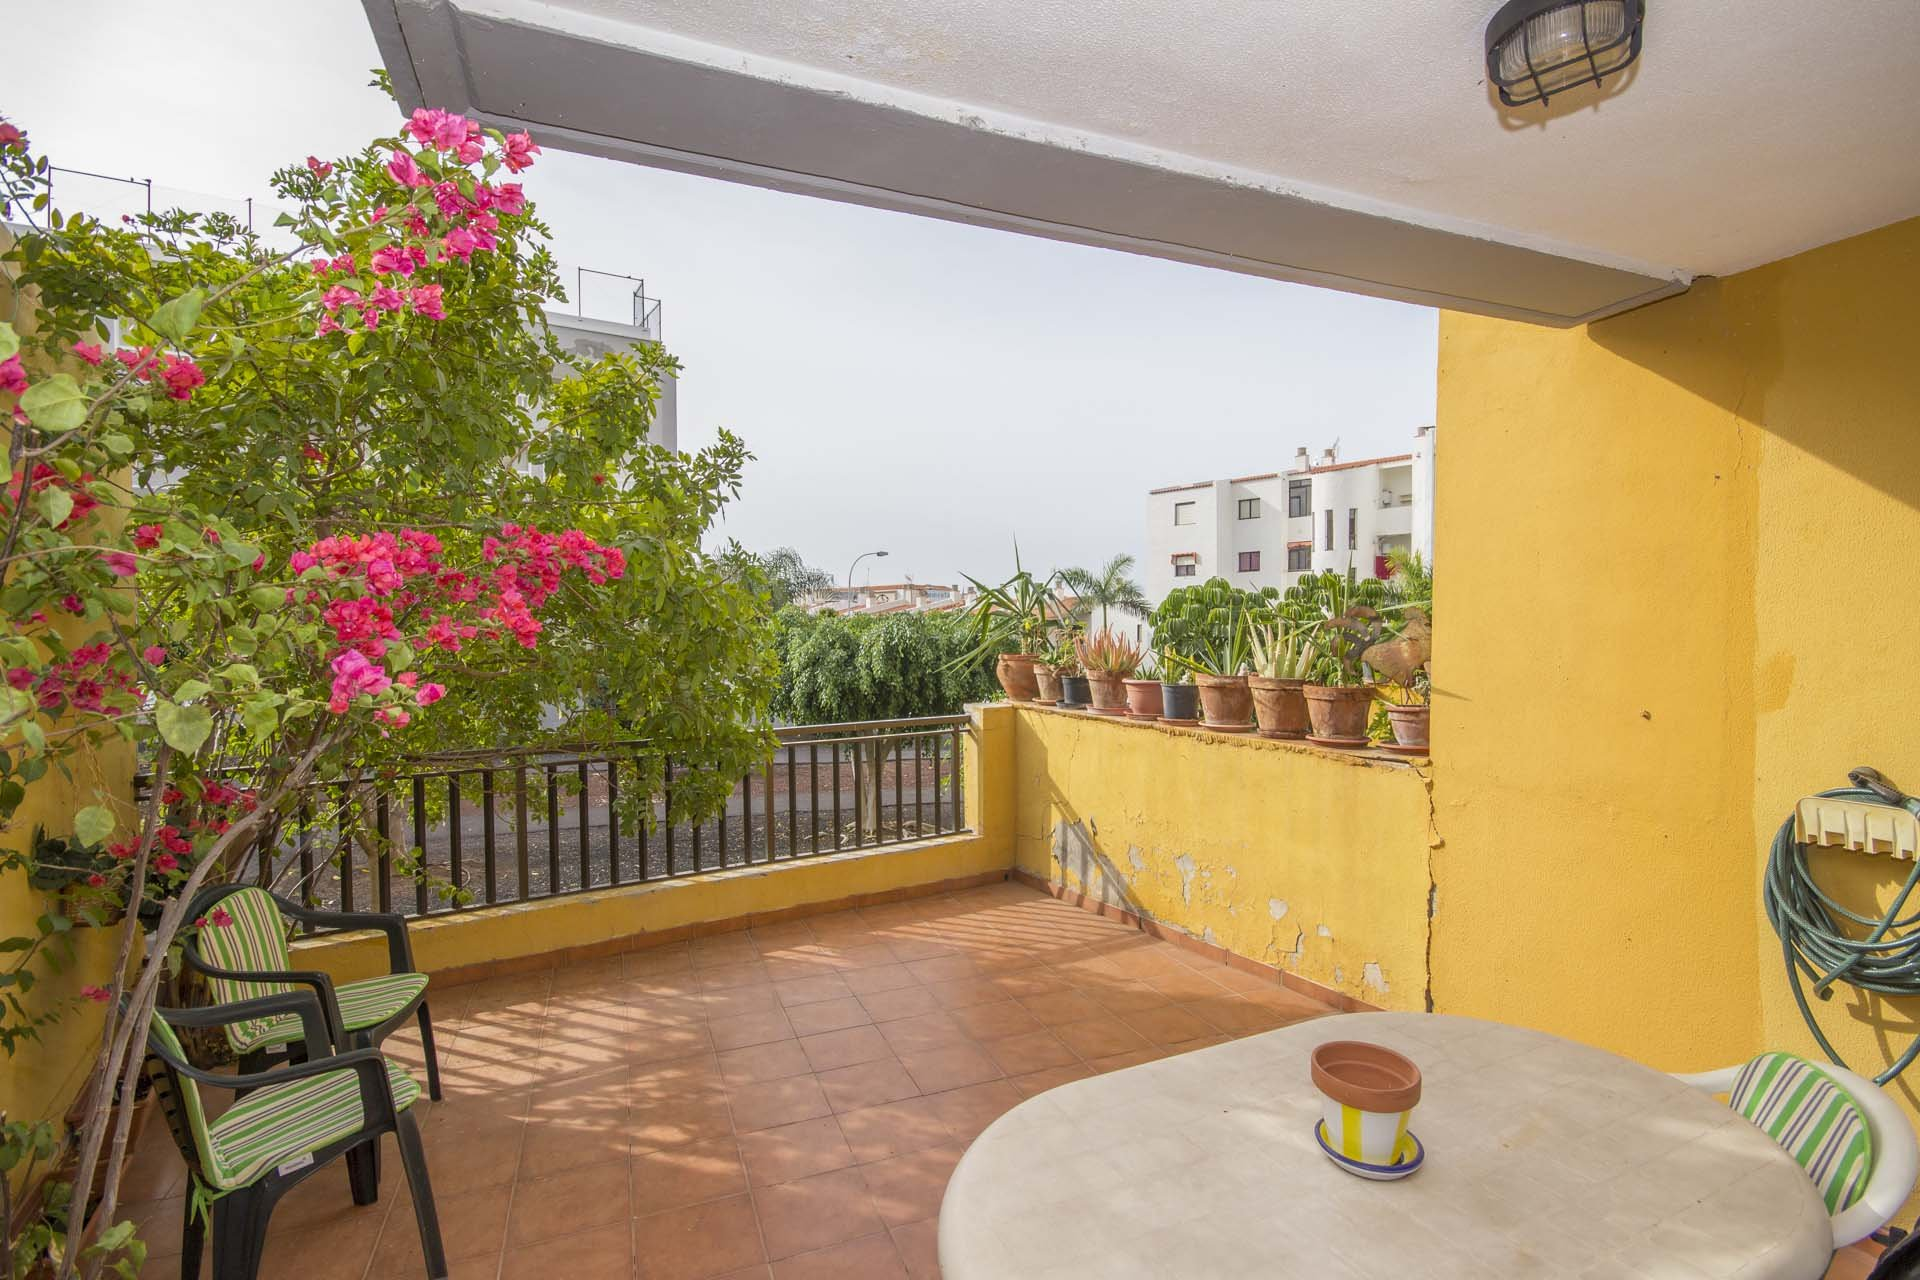 Home atlas real estate tenerife canary islands spain for 12th avenue terrace apartments